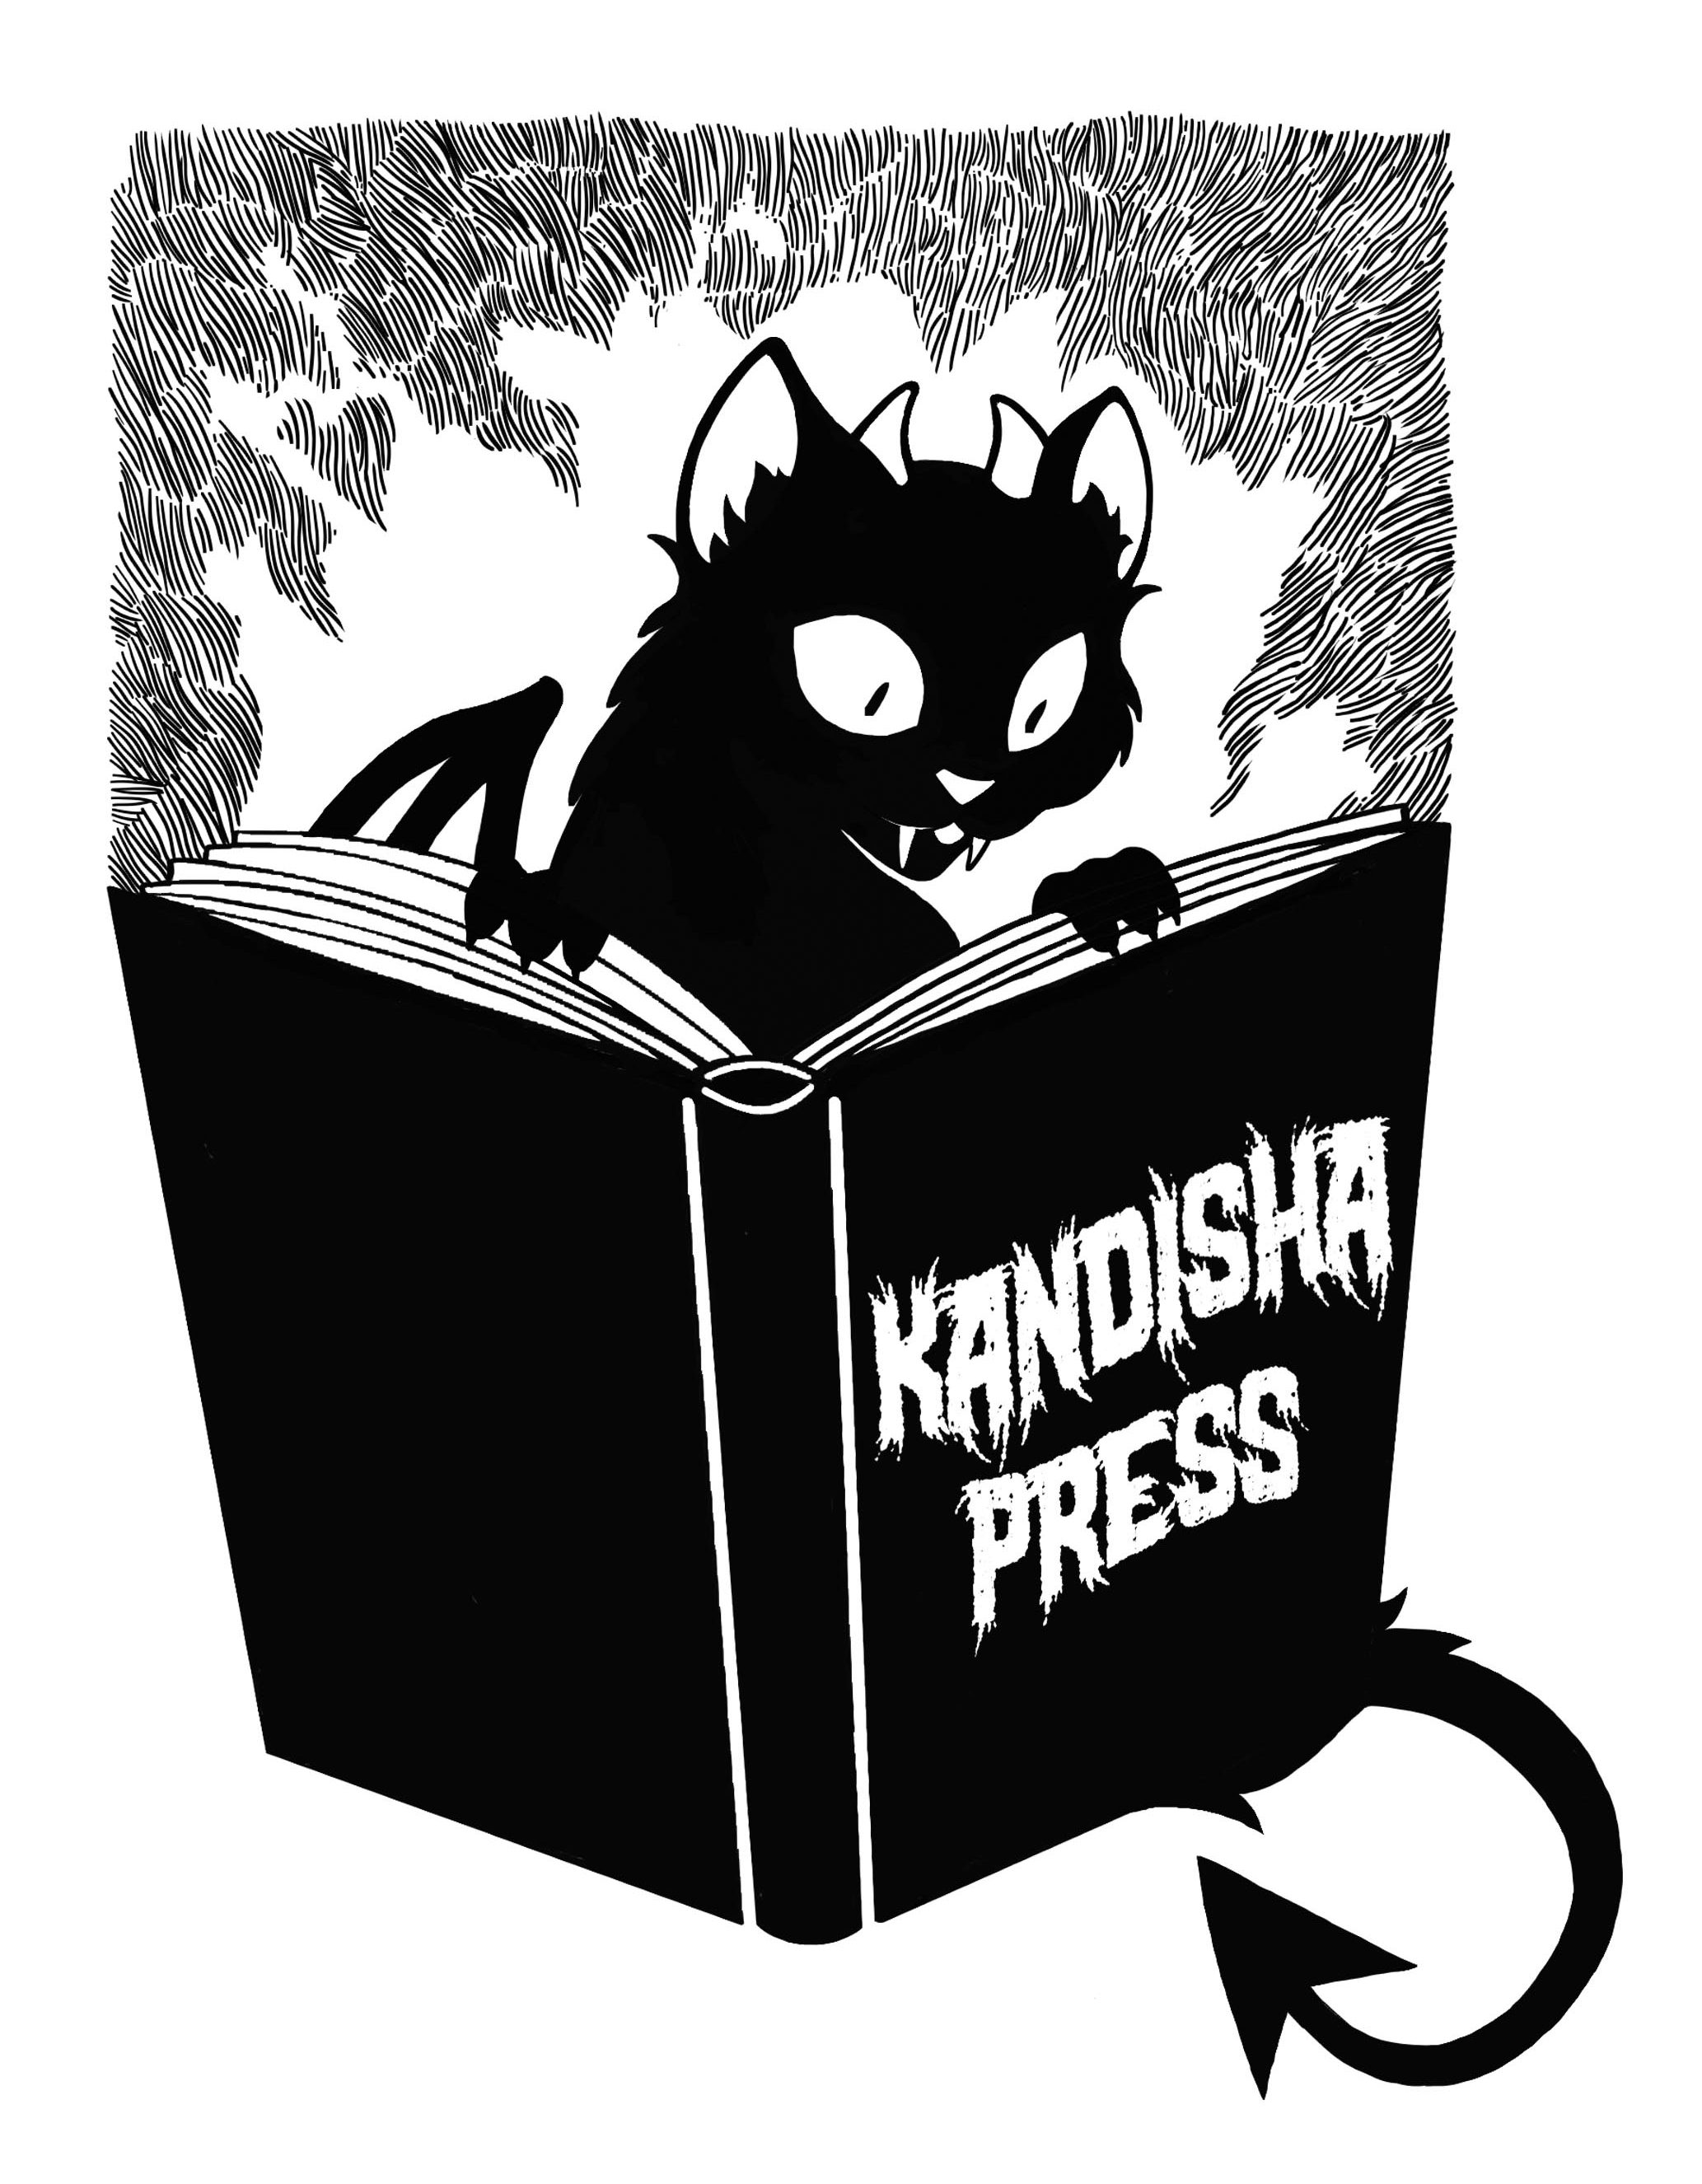 KANDISHA PRESS